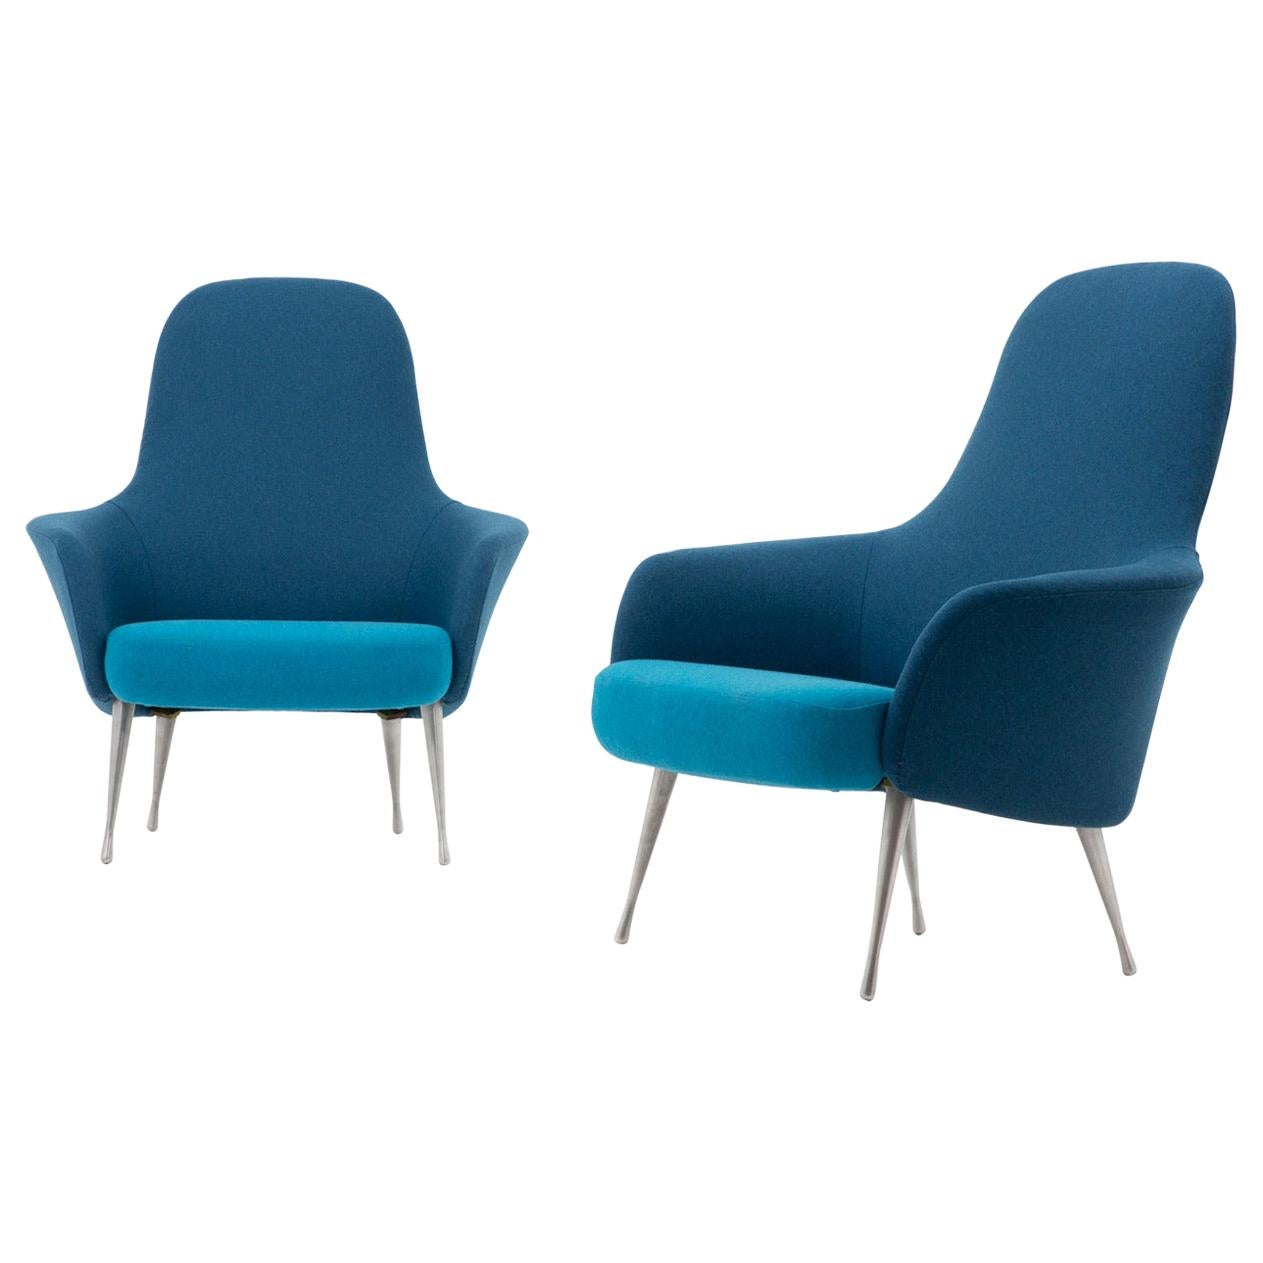 Scandinavian Midcentury Lounge Chairs by Alf Svensson for DUX, 1960s